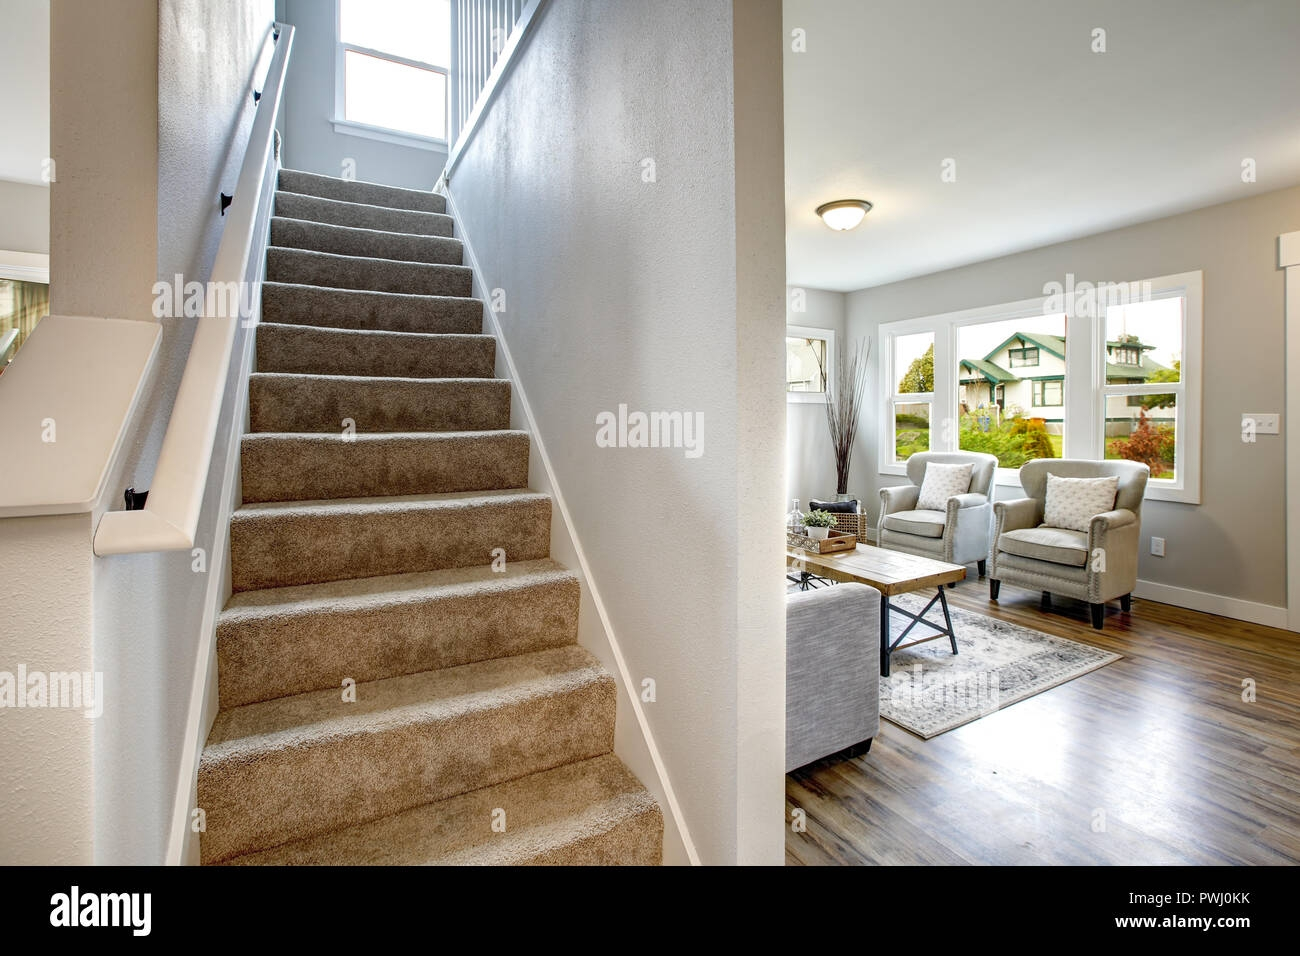 Foyer Staircase Lined With Beige Carpet Runner And Living Room   Beige Carpet On Stairs   Pattern   Dark Beige   Nice   Bound Edge   Hardwood Transition